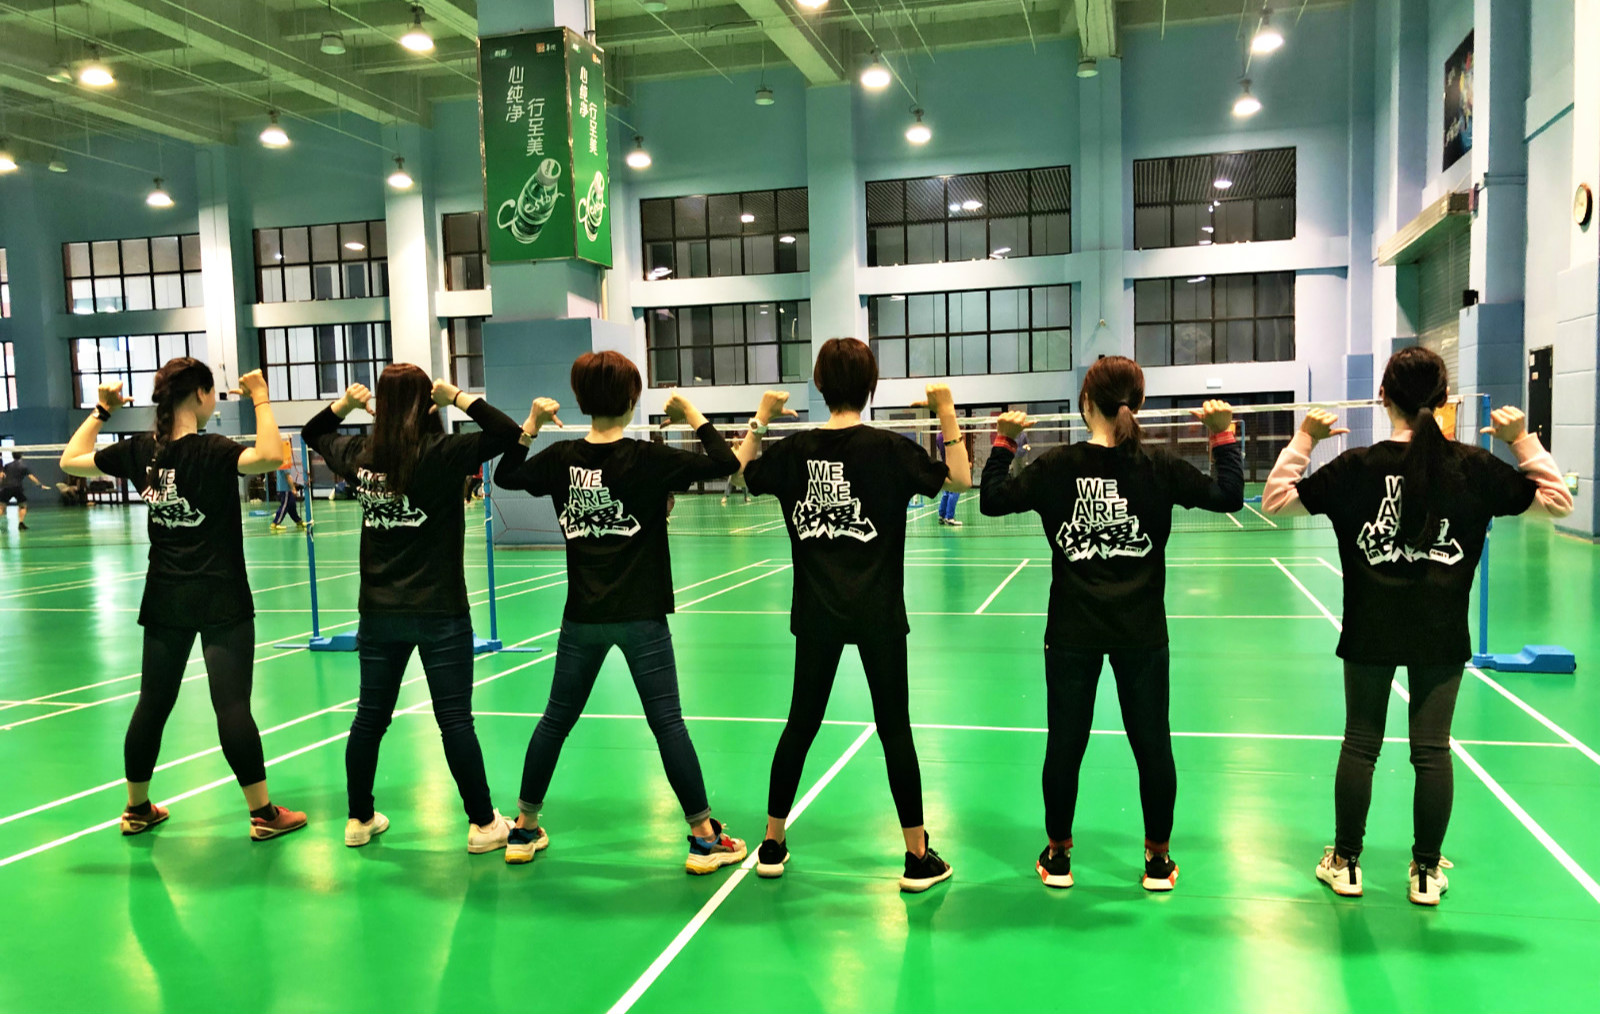 【The First Winner Cup Badminton Competition】  Our youth is different